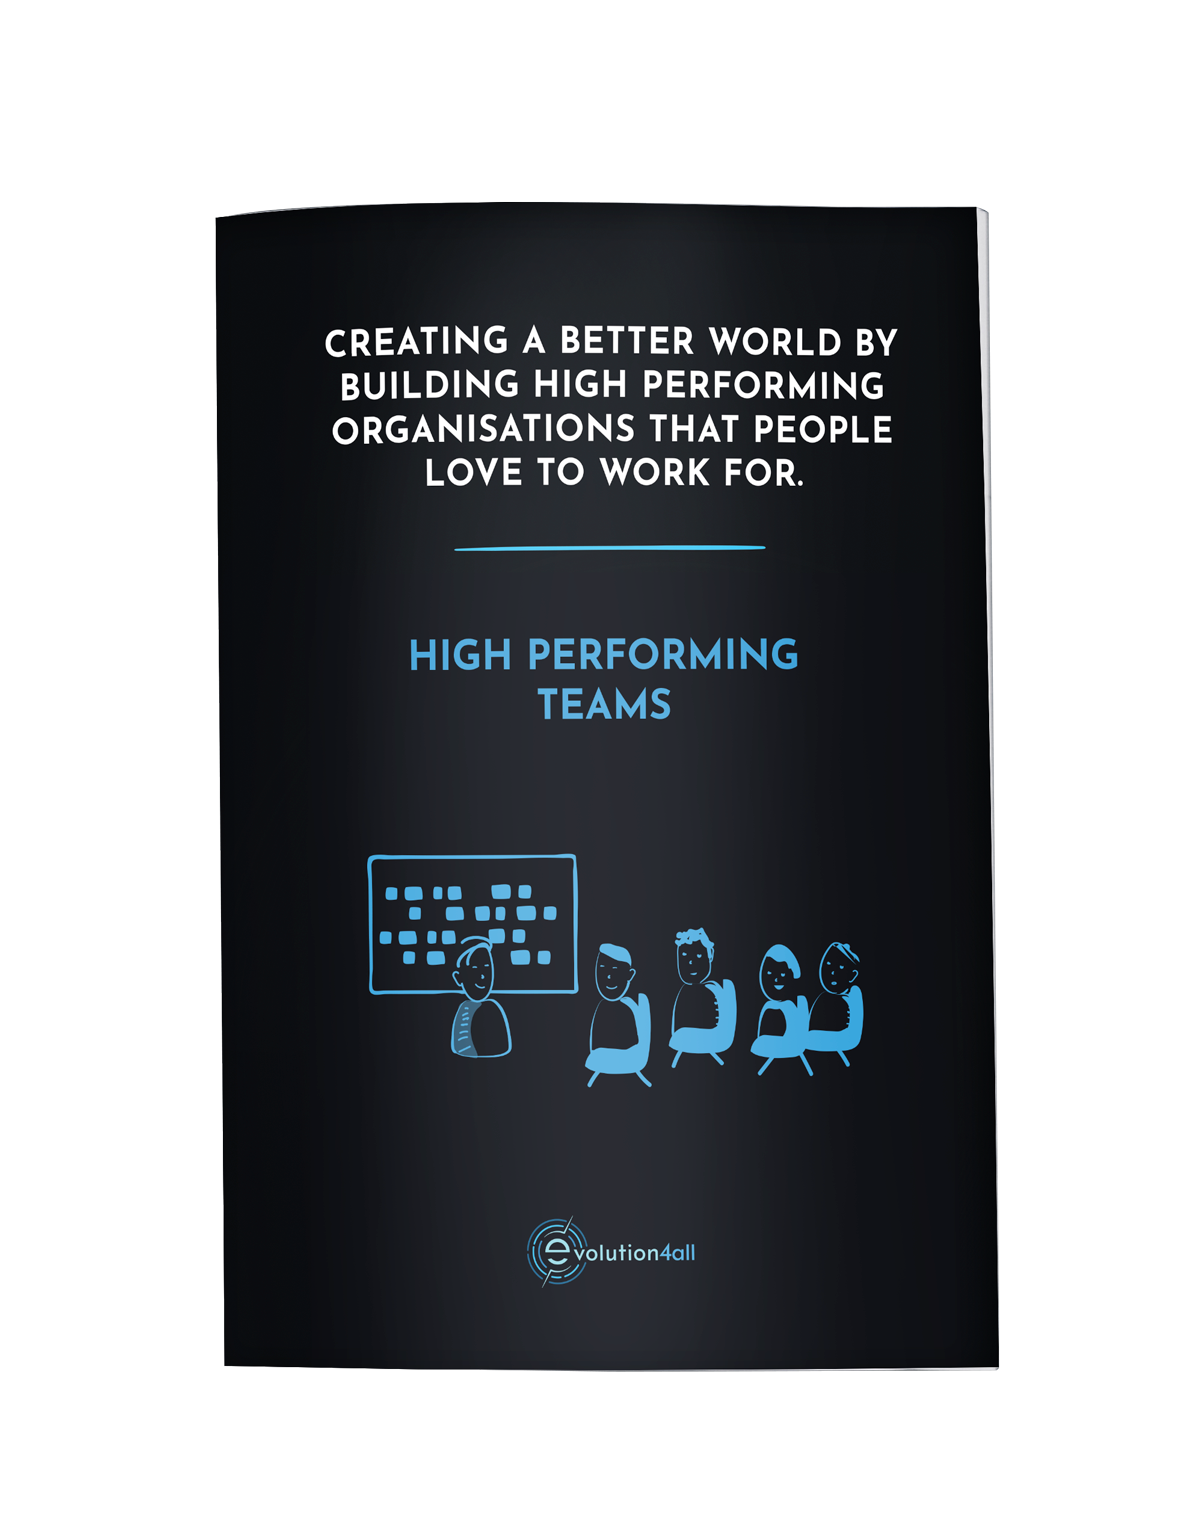 HIGH PERFORMING TEAMS